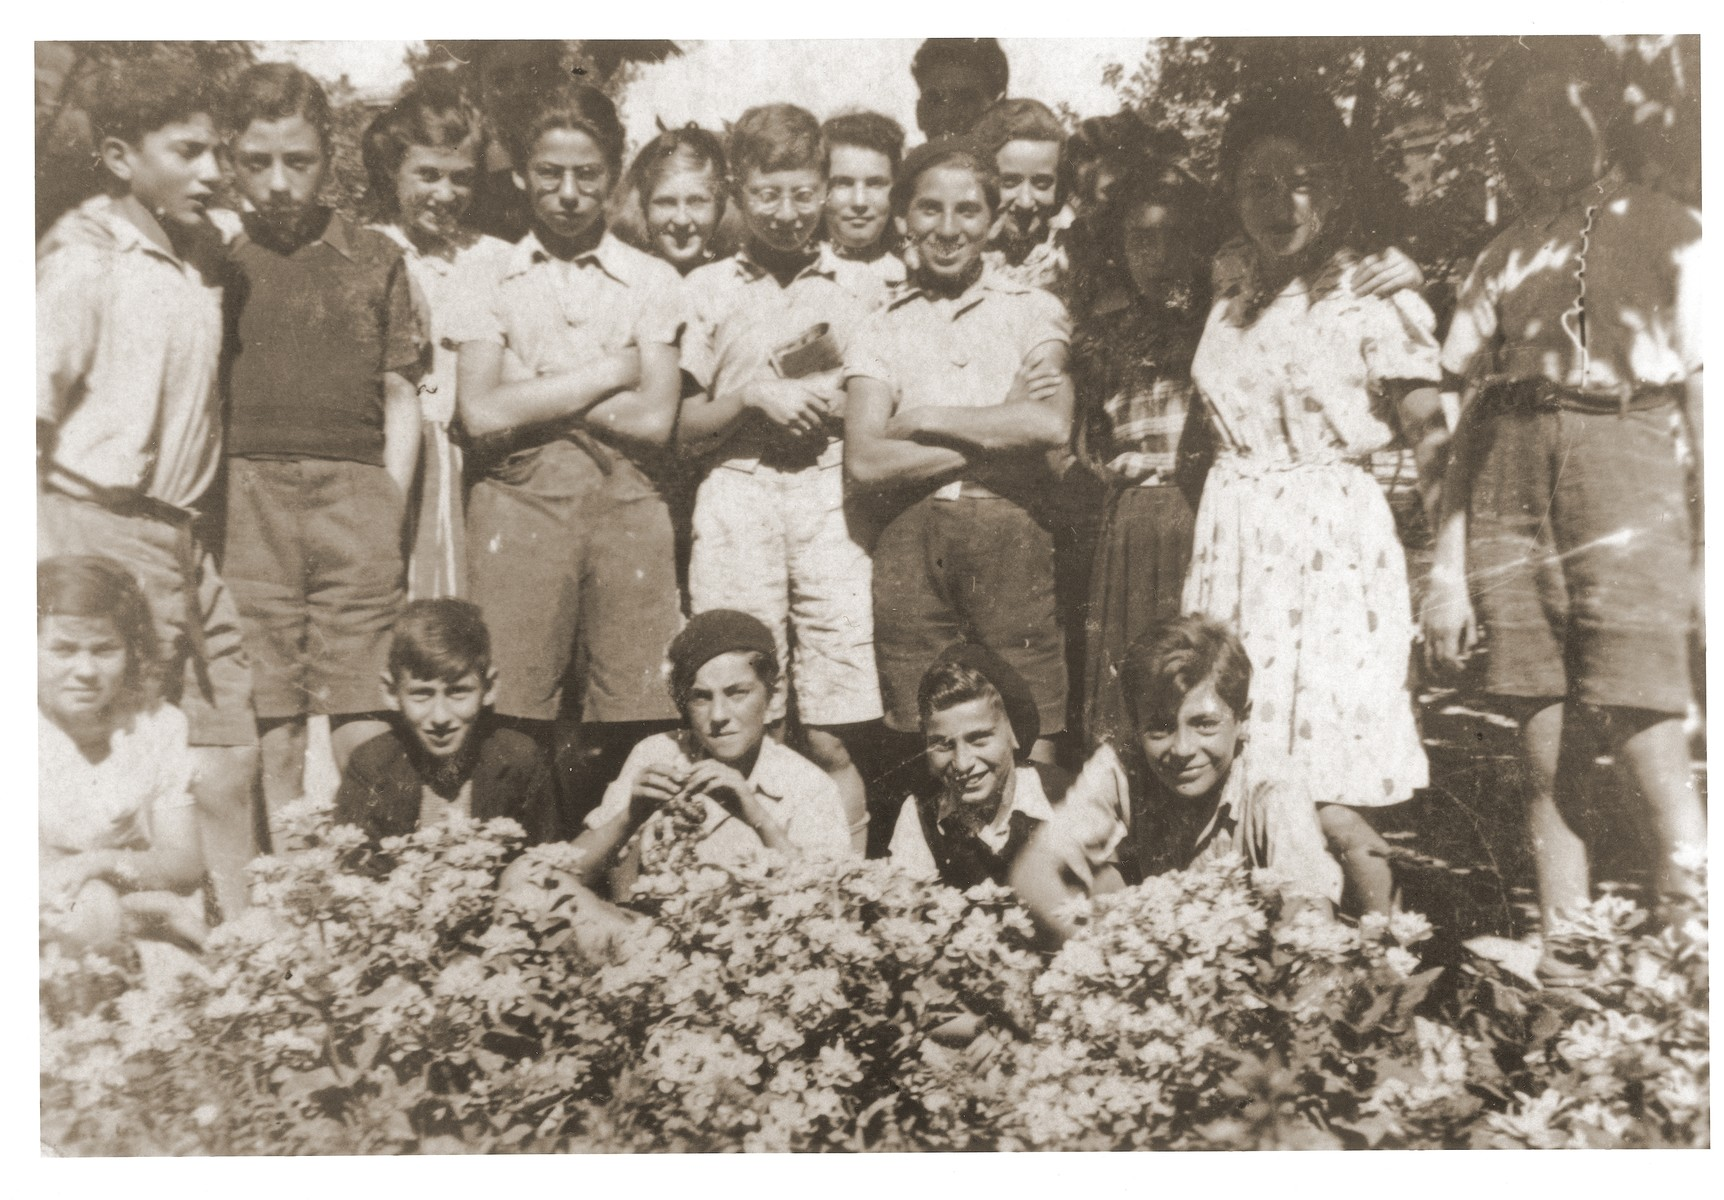 Group portrait of Jewish children under the care of the OSE (Oeuvre de Secours aux Enfants) at the Hotel Bompard internment camp.    Siegfried Weissmann is pictured standing fourth from the right in the second row.  Theodore Brenig is standing fourth from the left.  Bernhard Guenter Katz is seated in the front, second from the left.